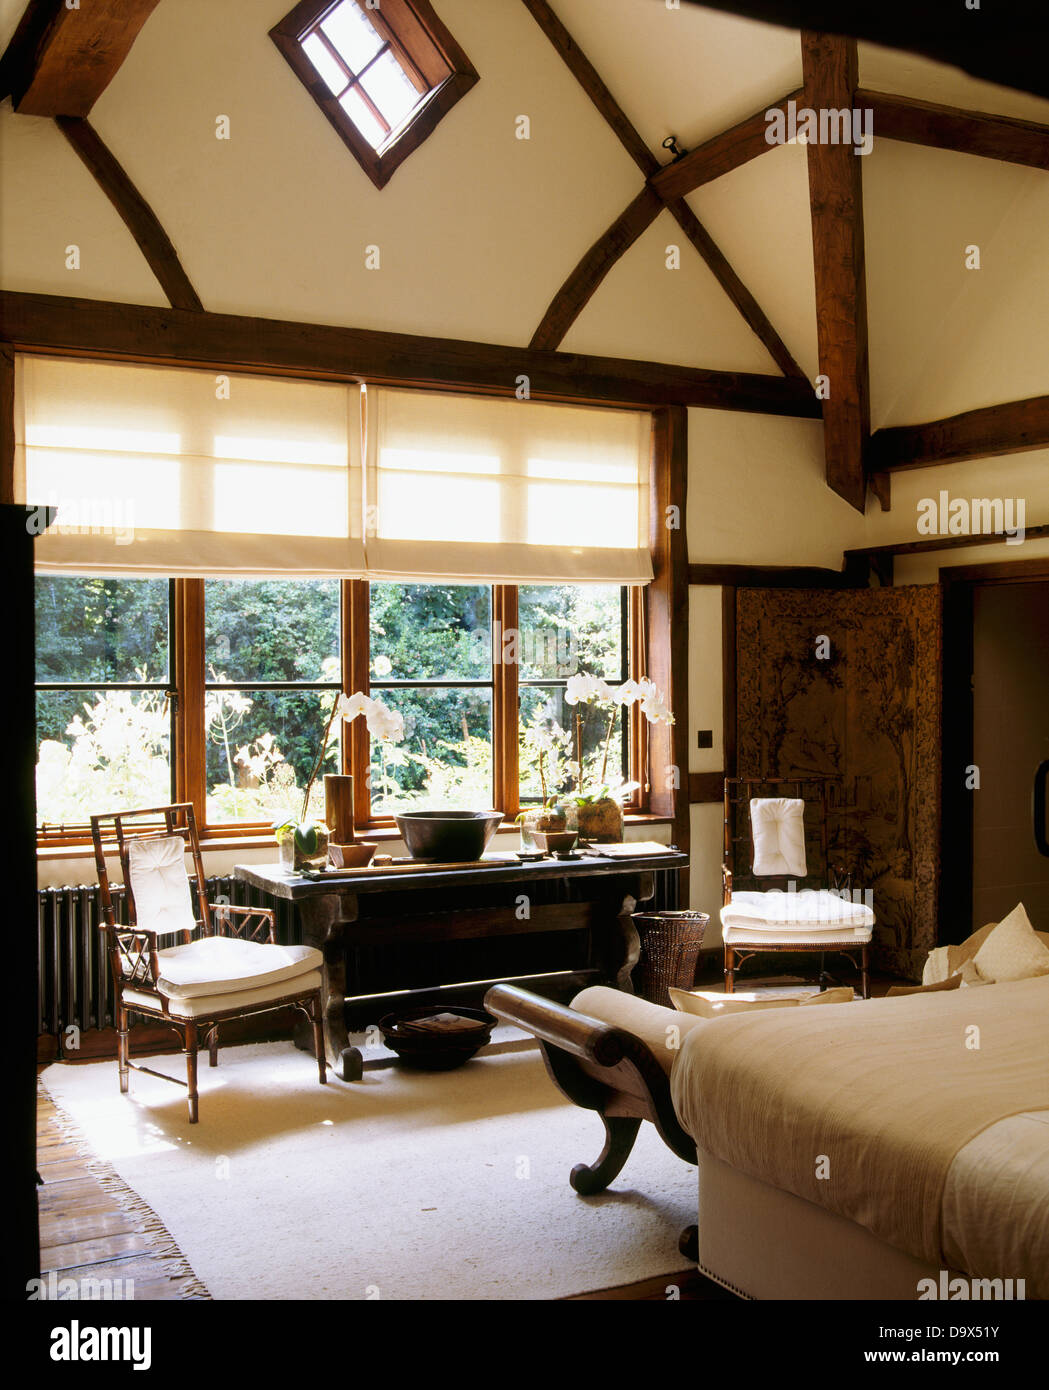 Tudor Style Beams And High Vaulted Ceiling In Country